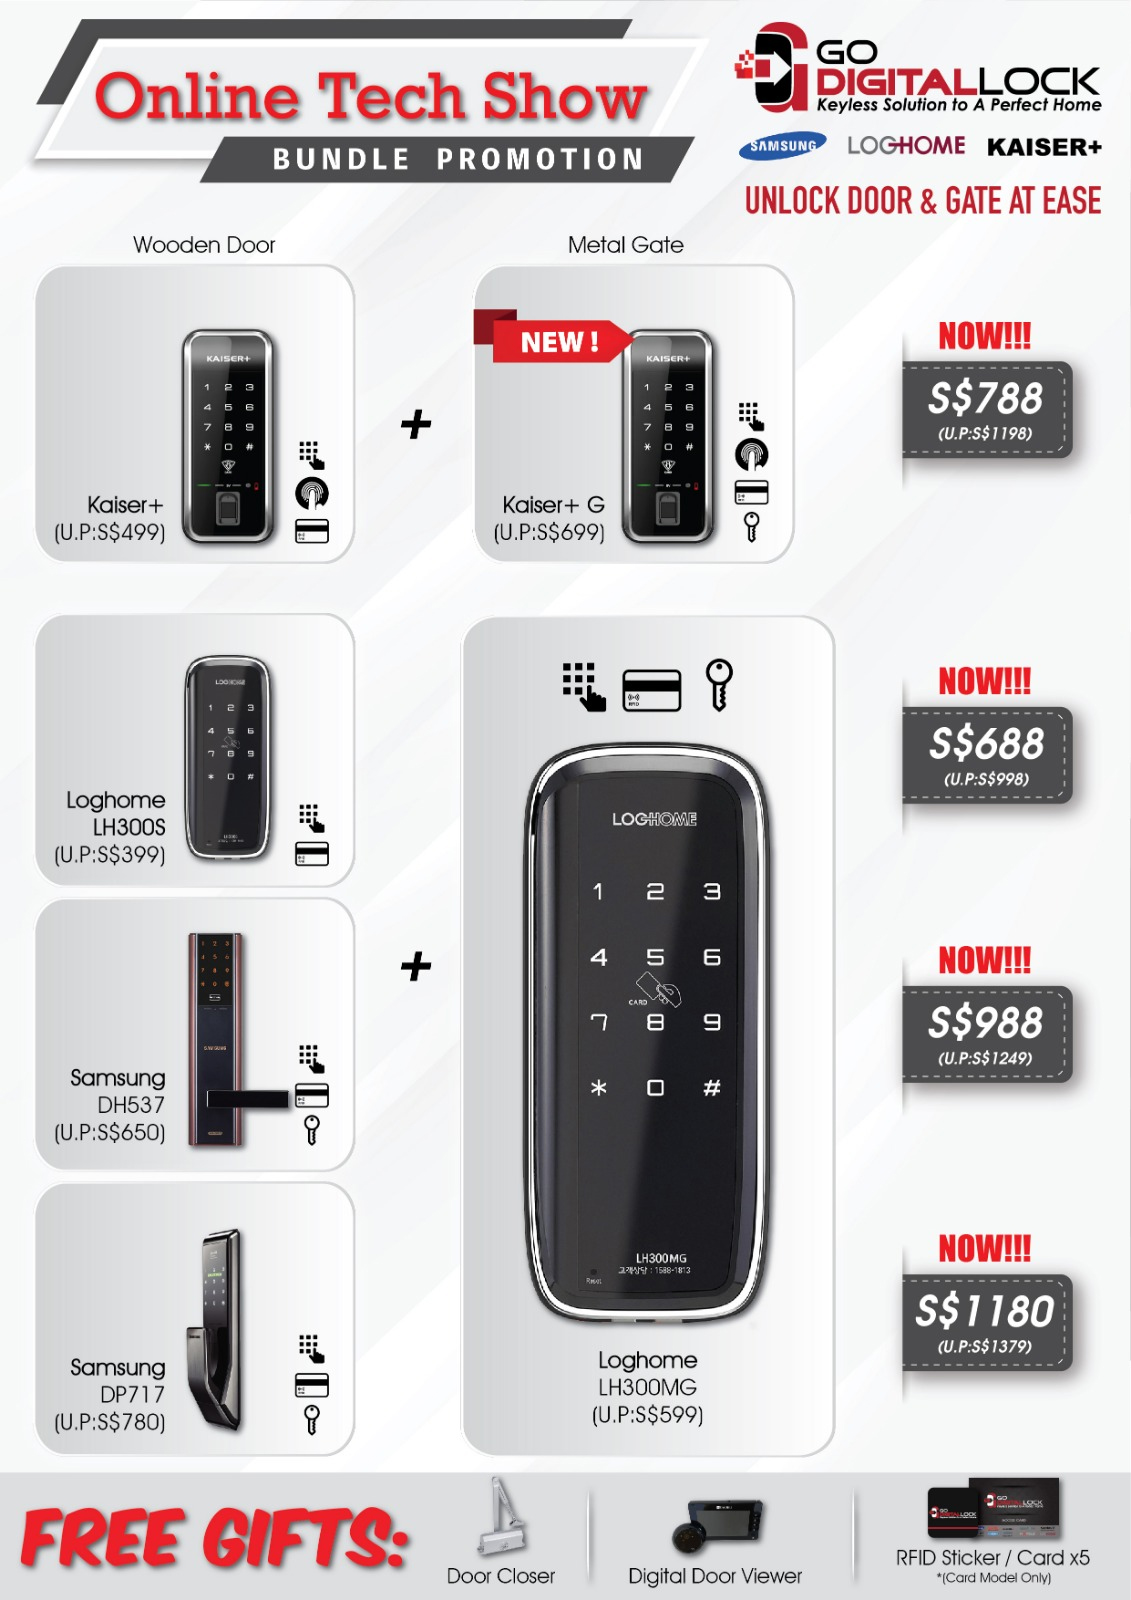 ONLINE TECH SHOW DIGITAL LOCK BUNDLE DEALS 2020 SINGAPORE | Why Not Deals 2 & Promotions